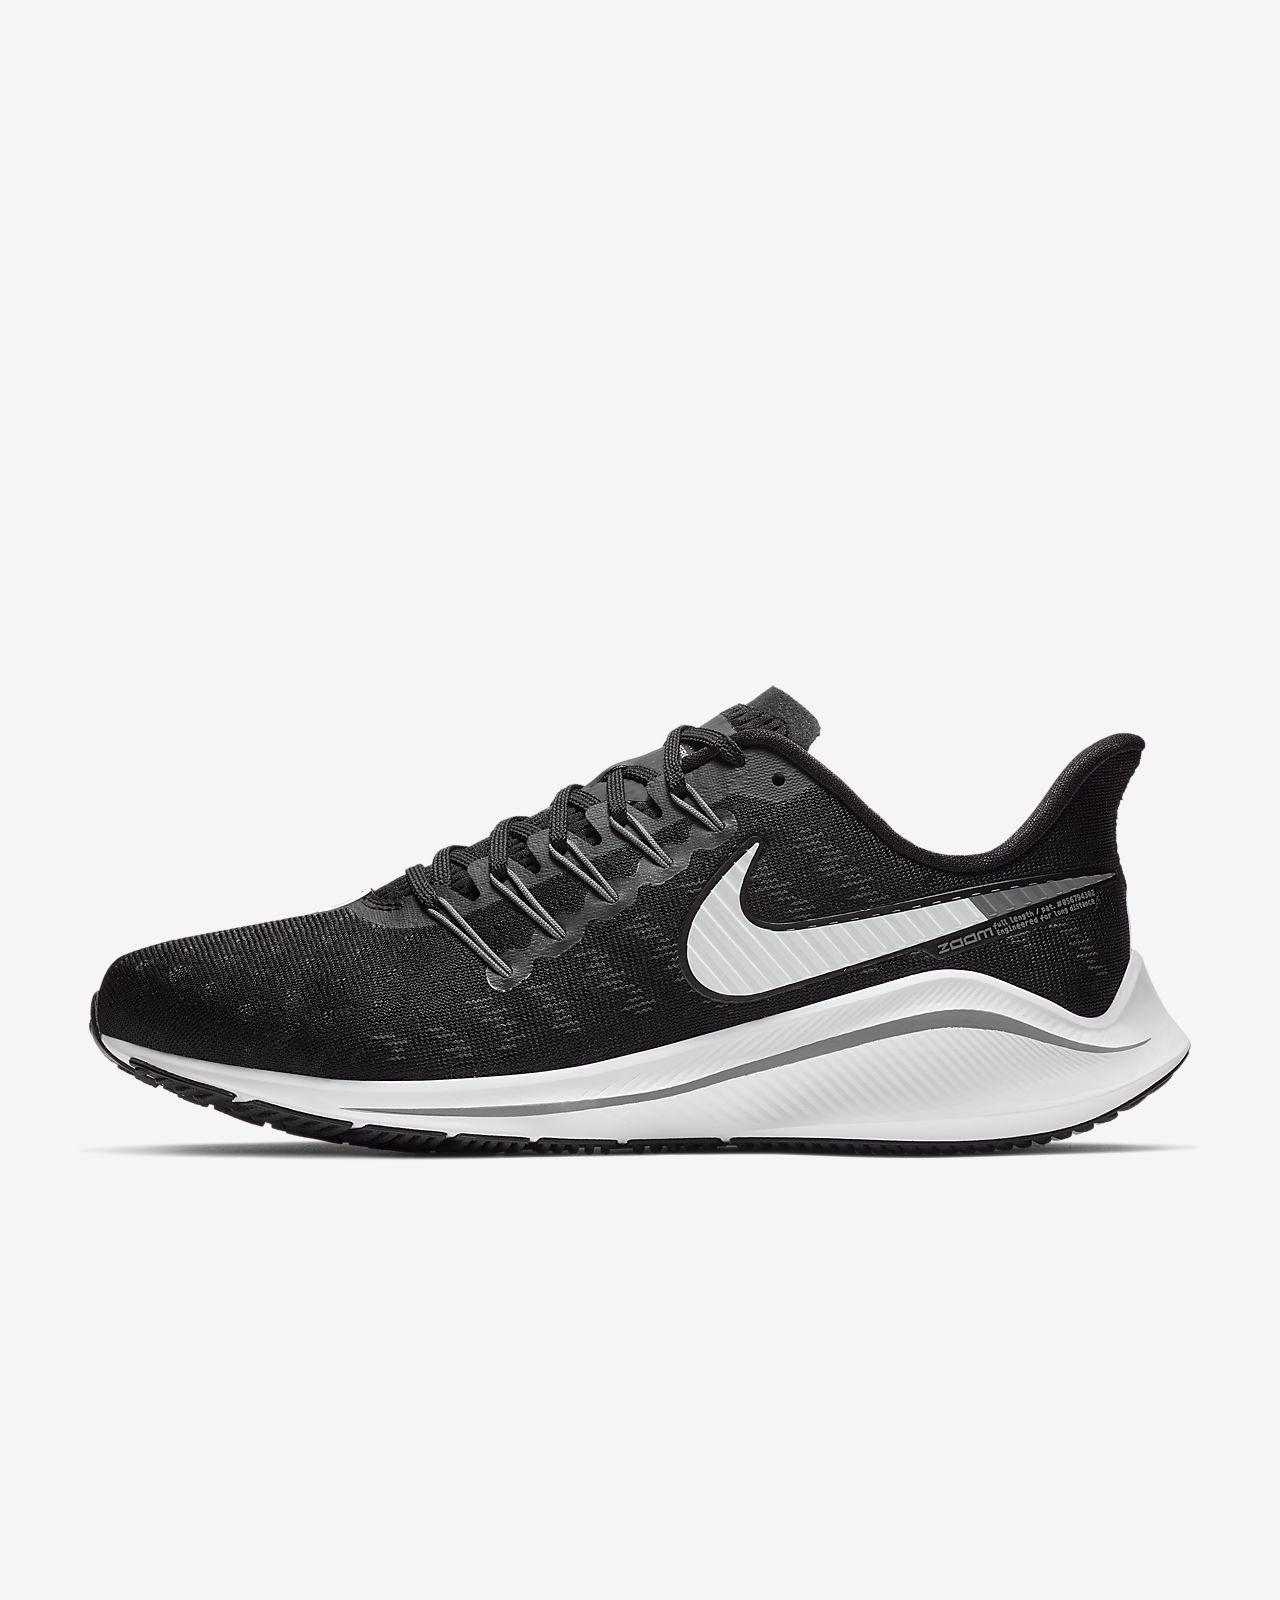 Nike Air Zoom Vomero 13 (Extra Wide) Men's Running Shoe Size